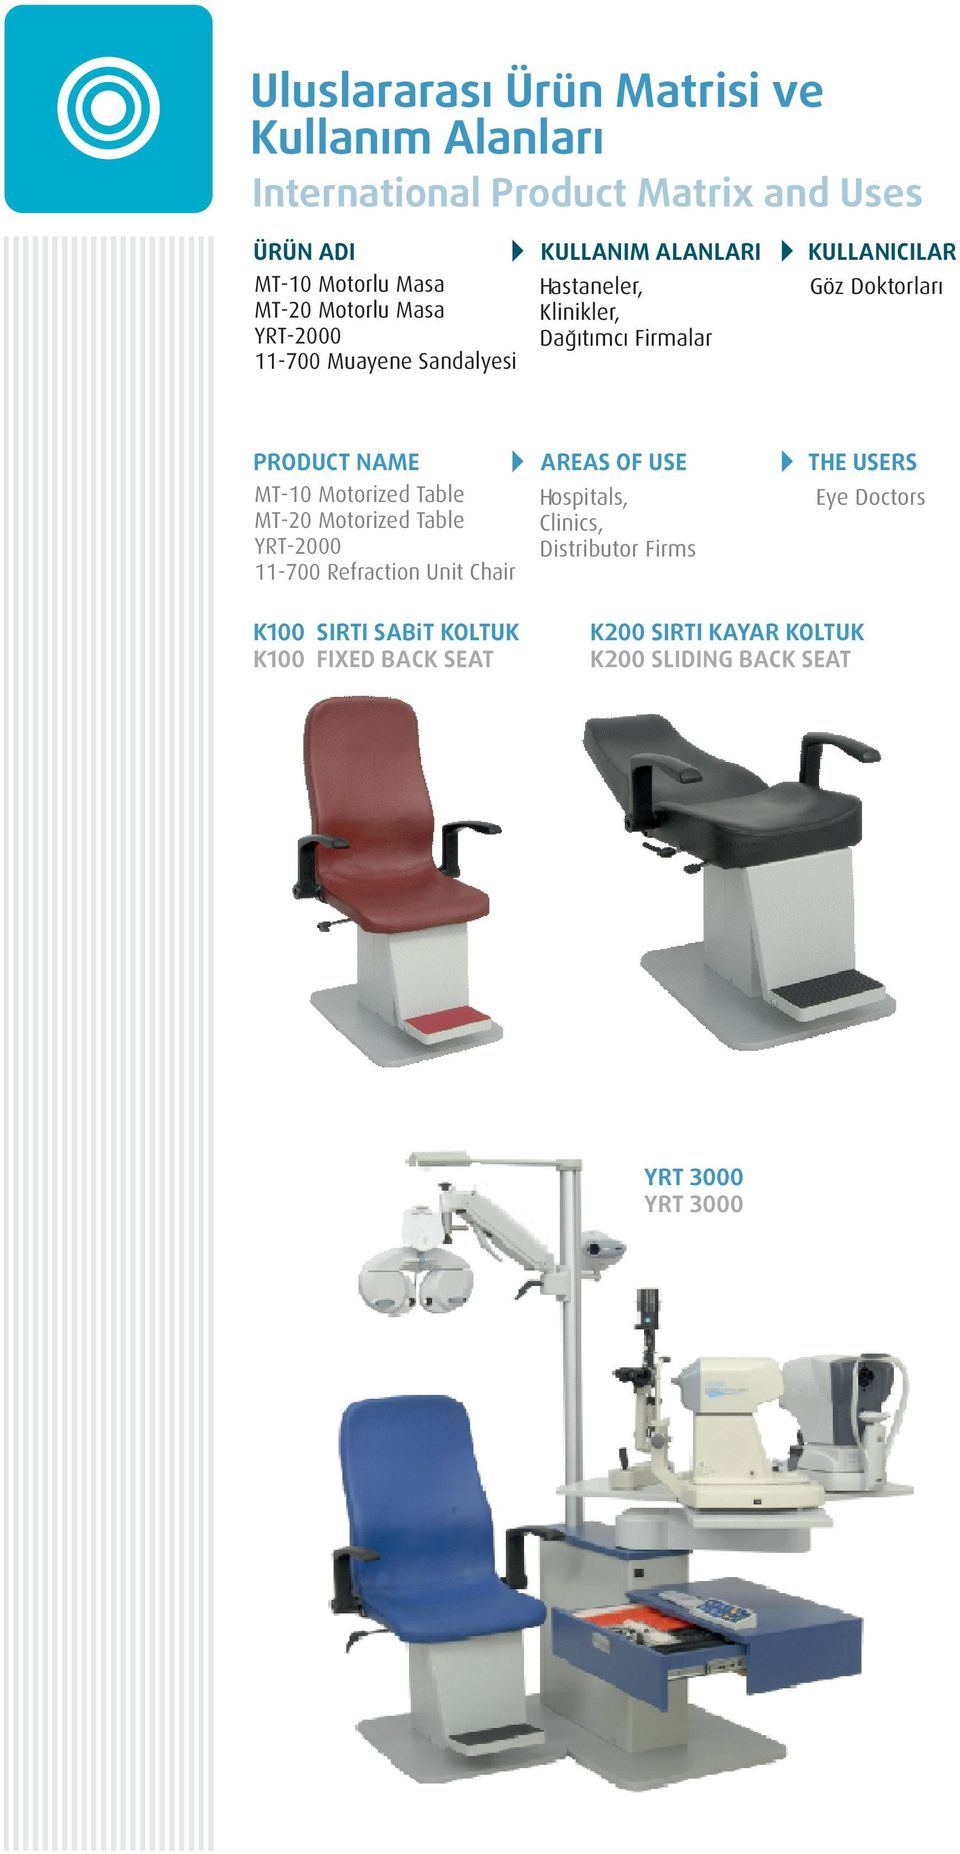 NAME MT-10 Motorized Table MT-20 Motorized Table YRT-2000 11-700 Refraction Unit Chair AREAS OF USE Hospitals, Clinics, Distributor